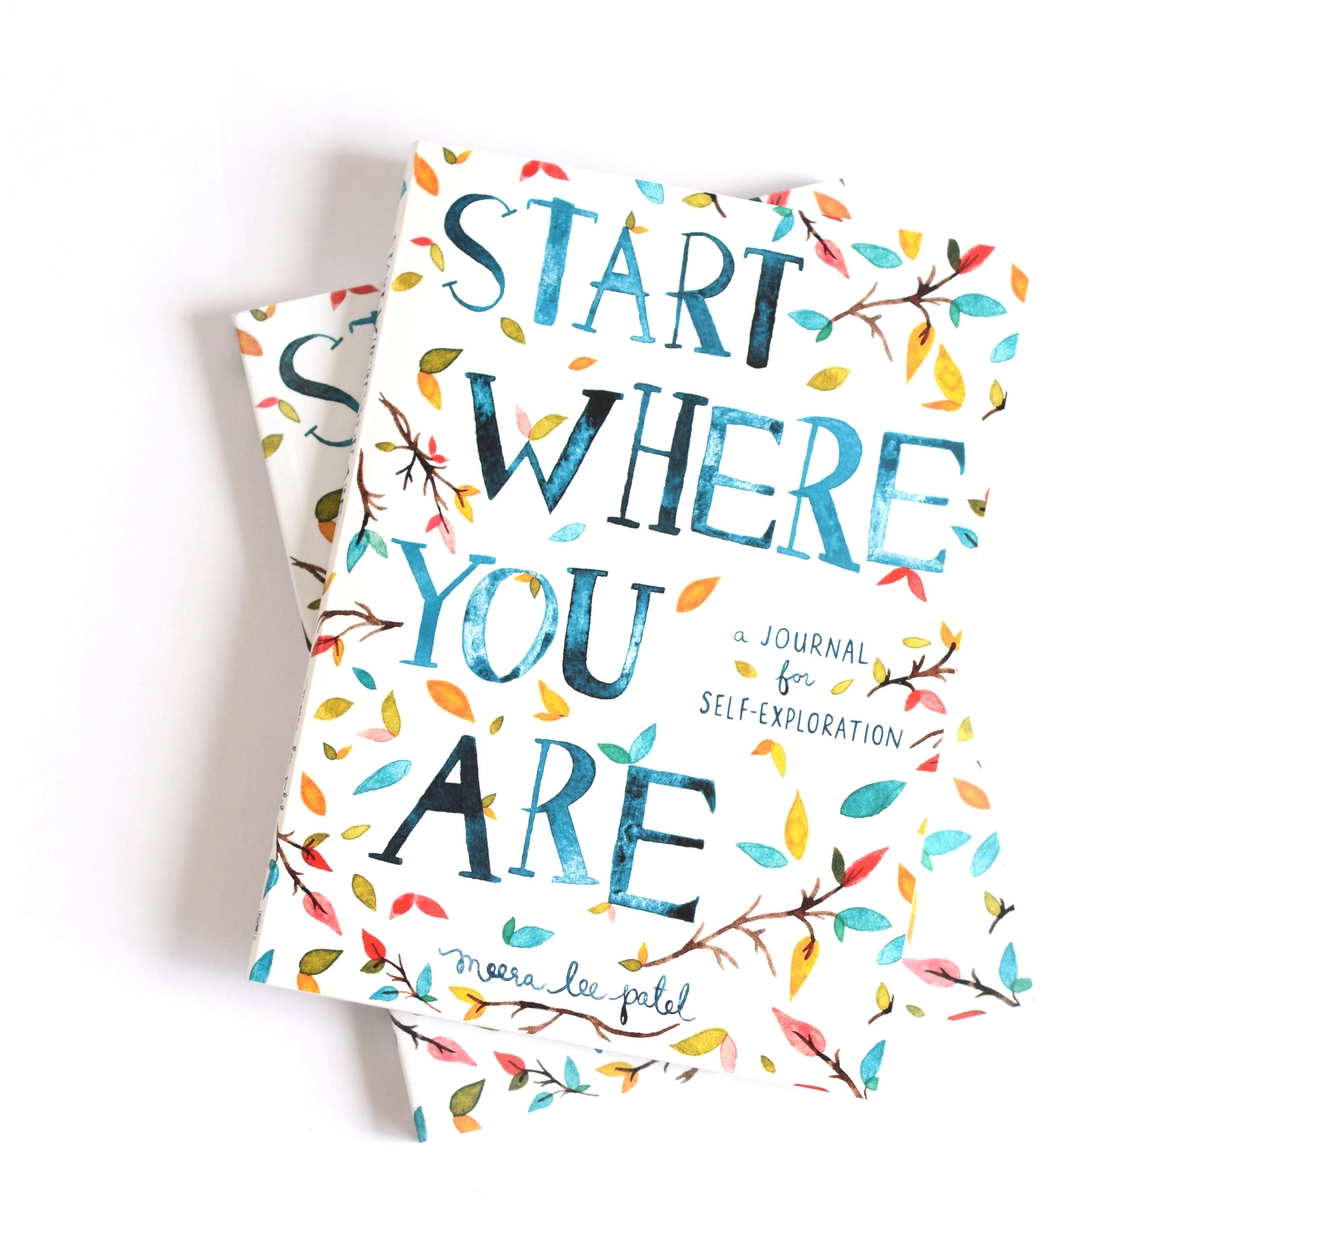 Meera Lee Patel Start Where You Are: A Journal for Self-Exploration